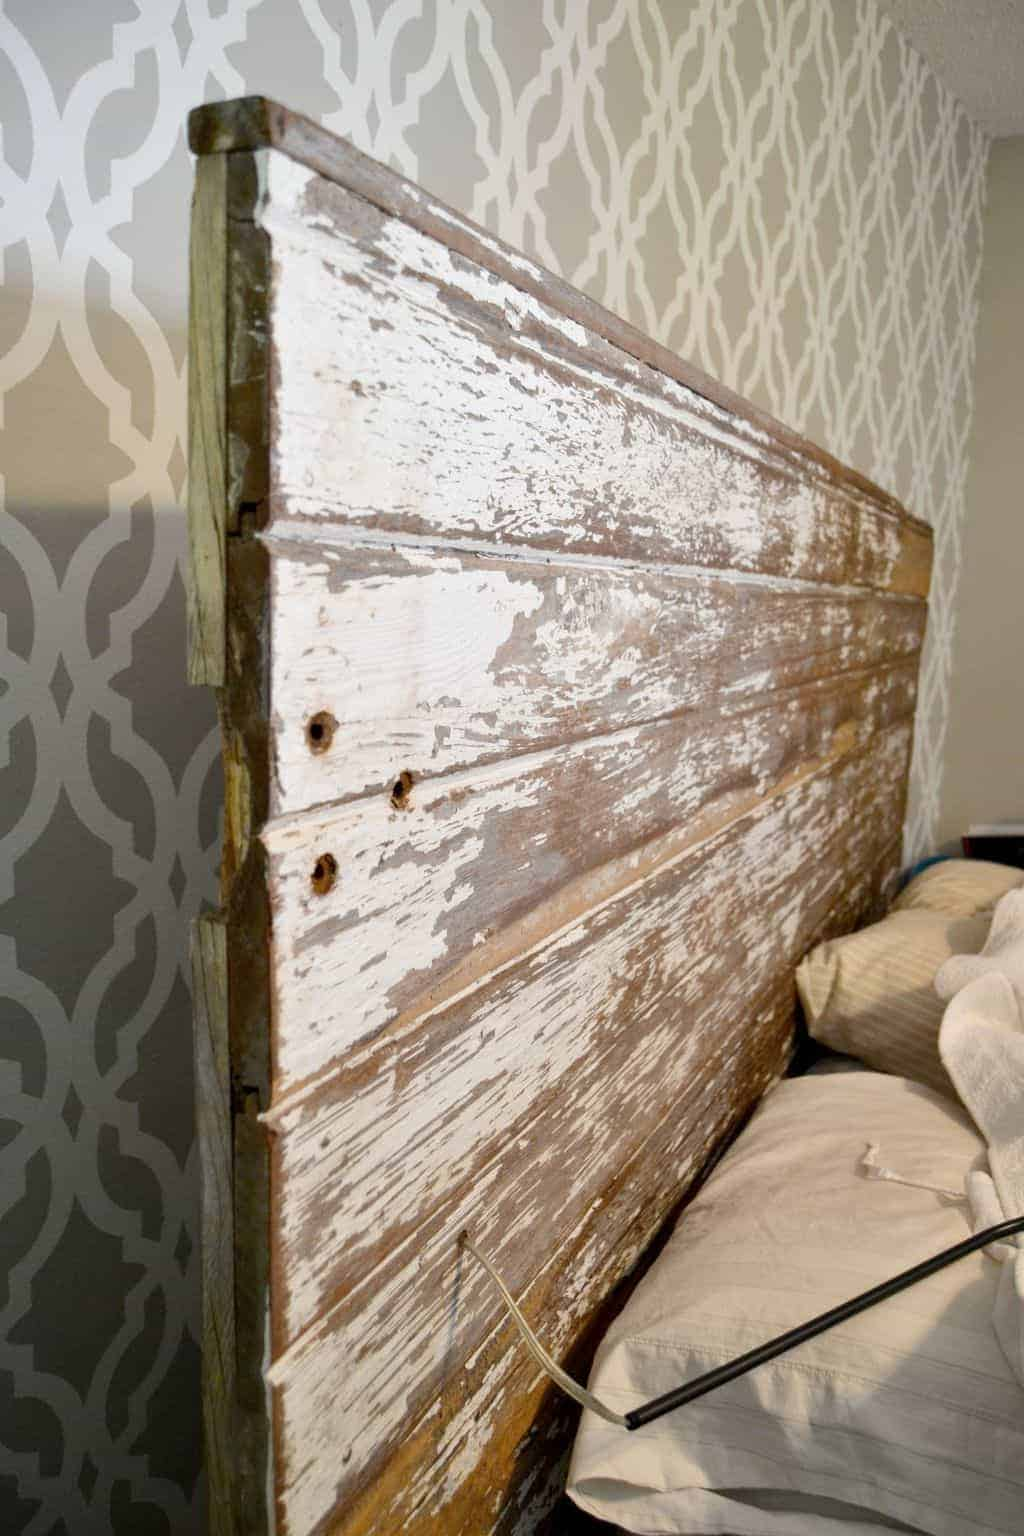 Pin this · If you would like to free up some space on your night stands click over & Repurposed Lamps Become DIY Plug In Wall Sconce For Headboard